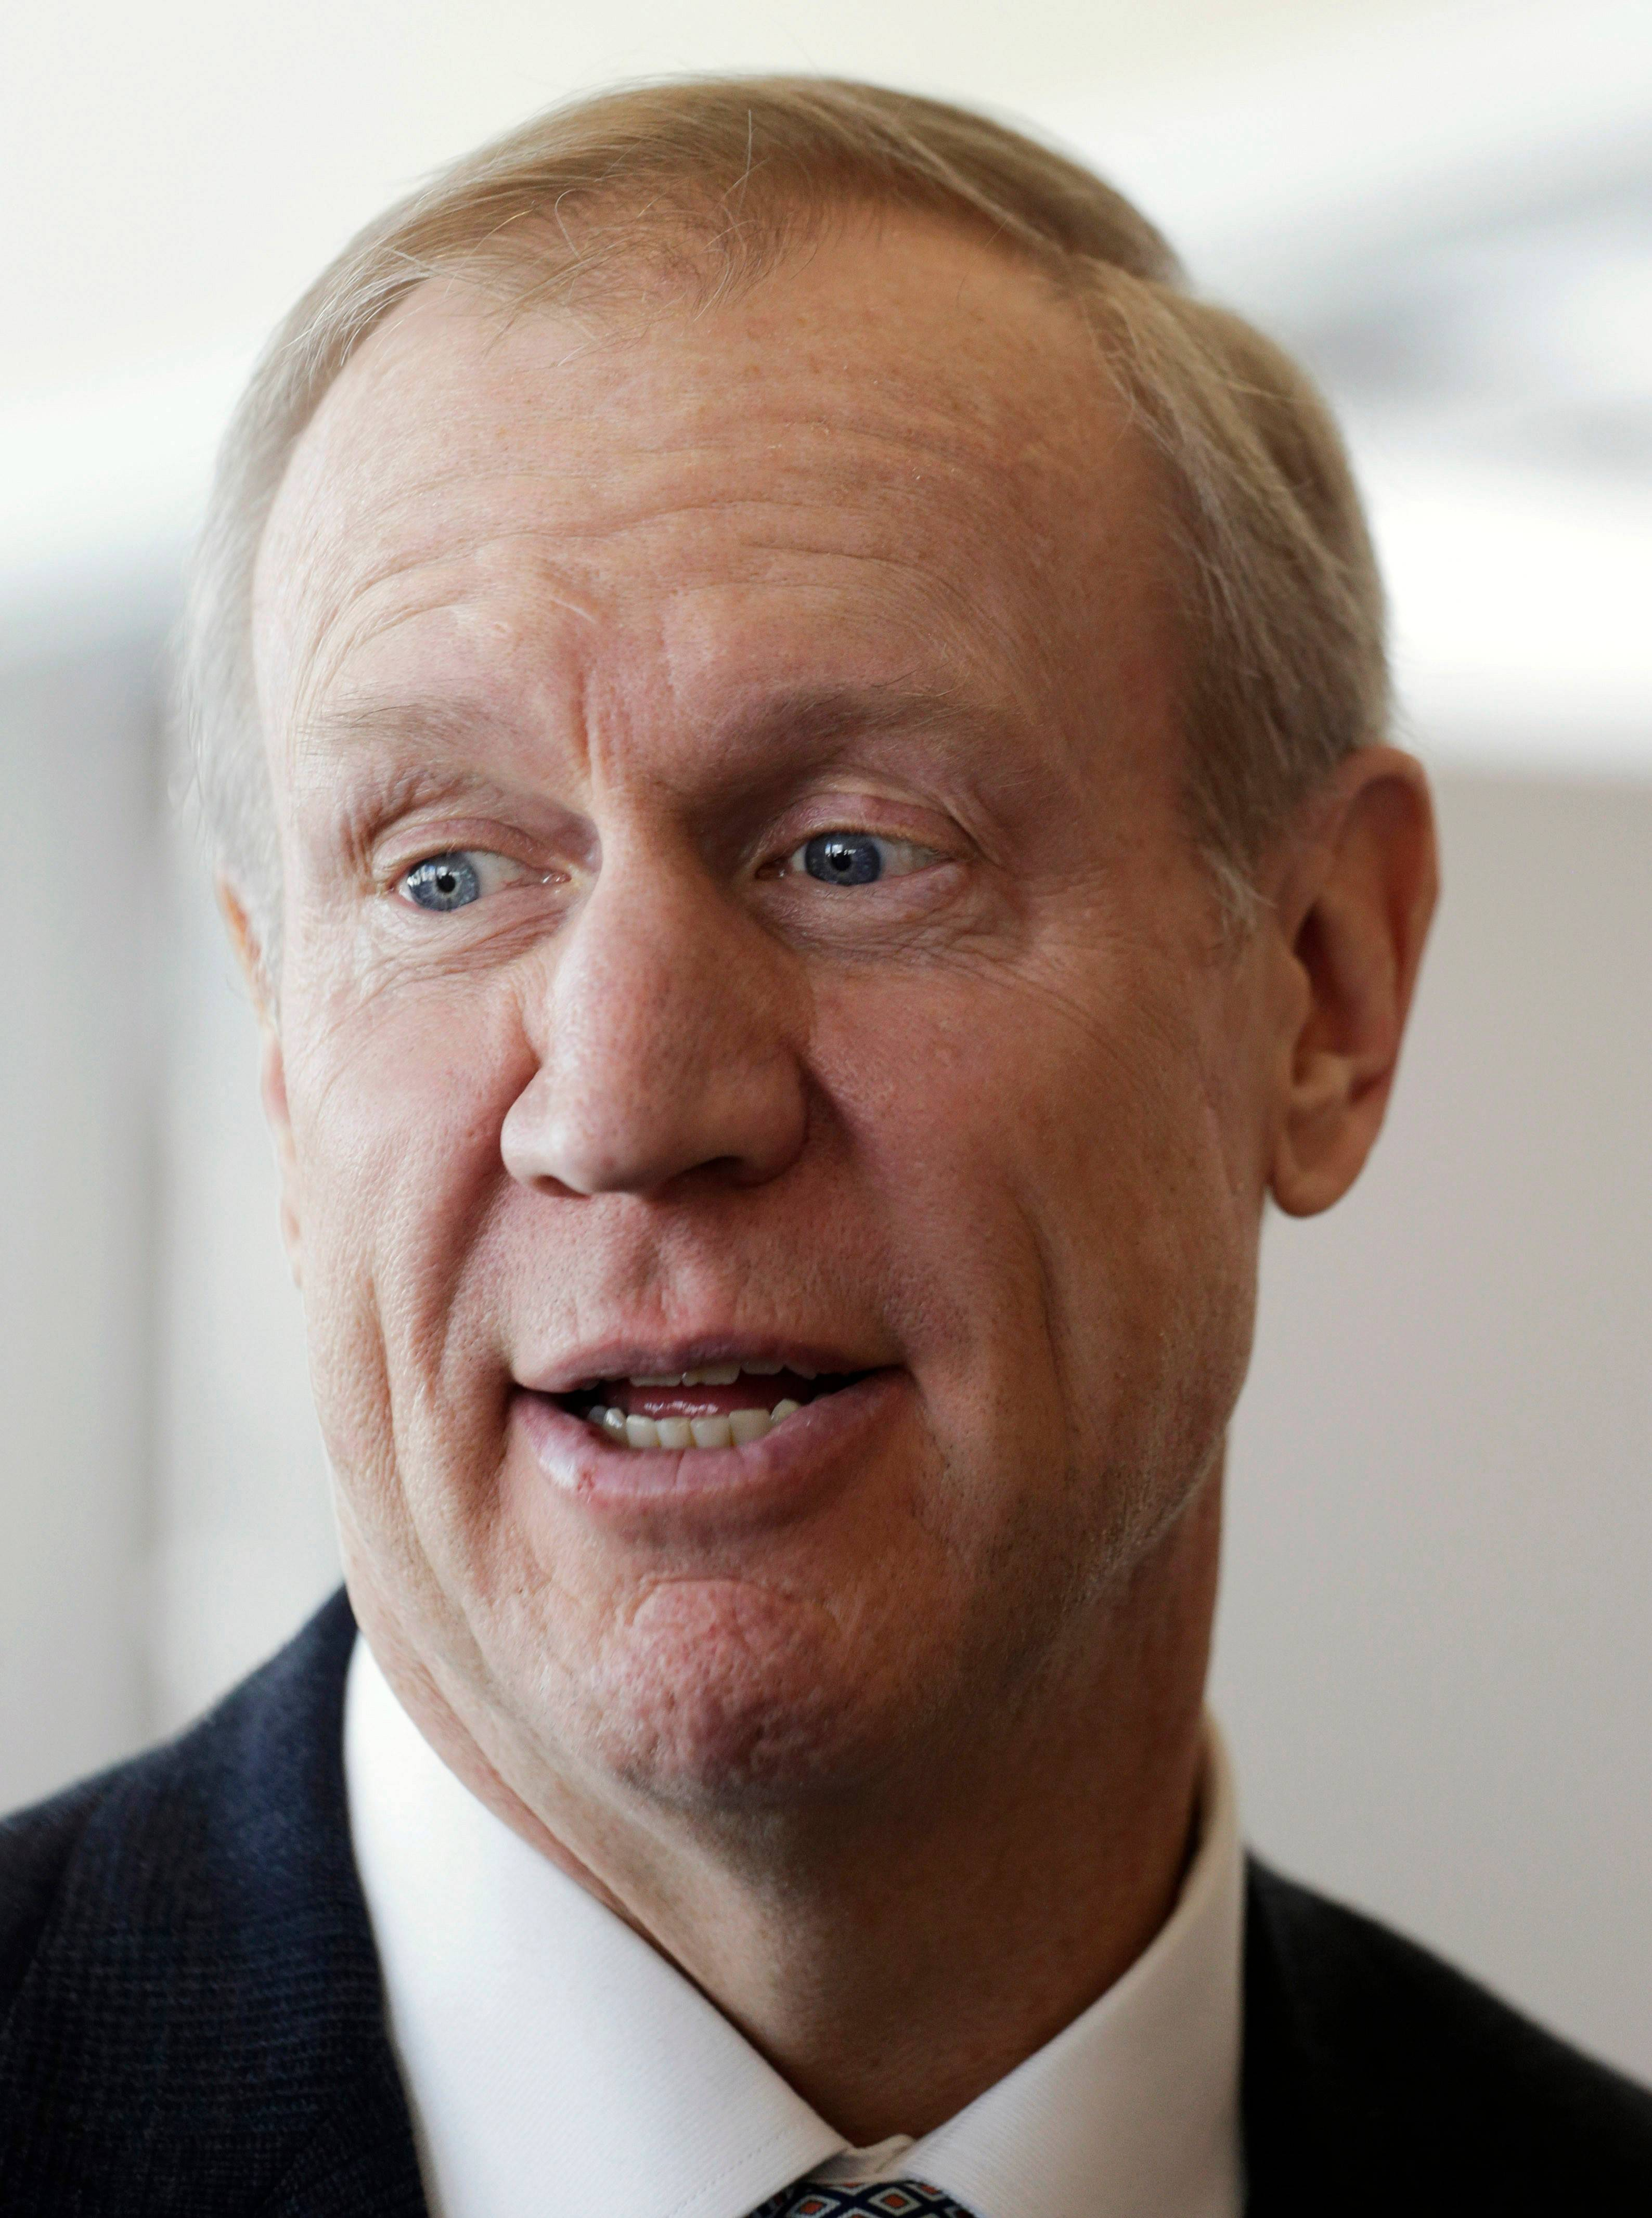 Rauner won't endorse Trump, skipping GOP National Convention